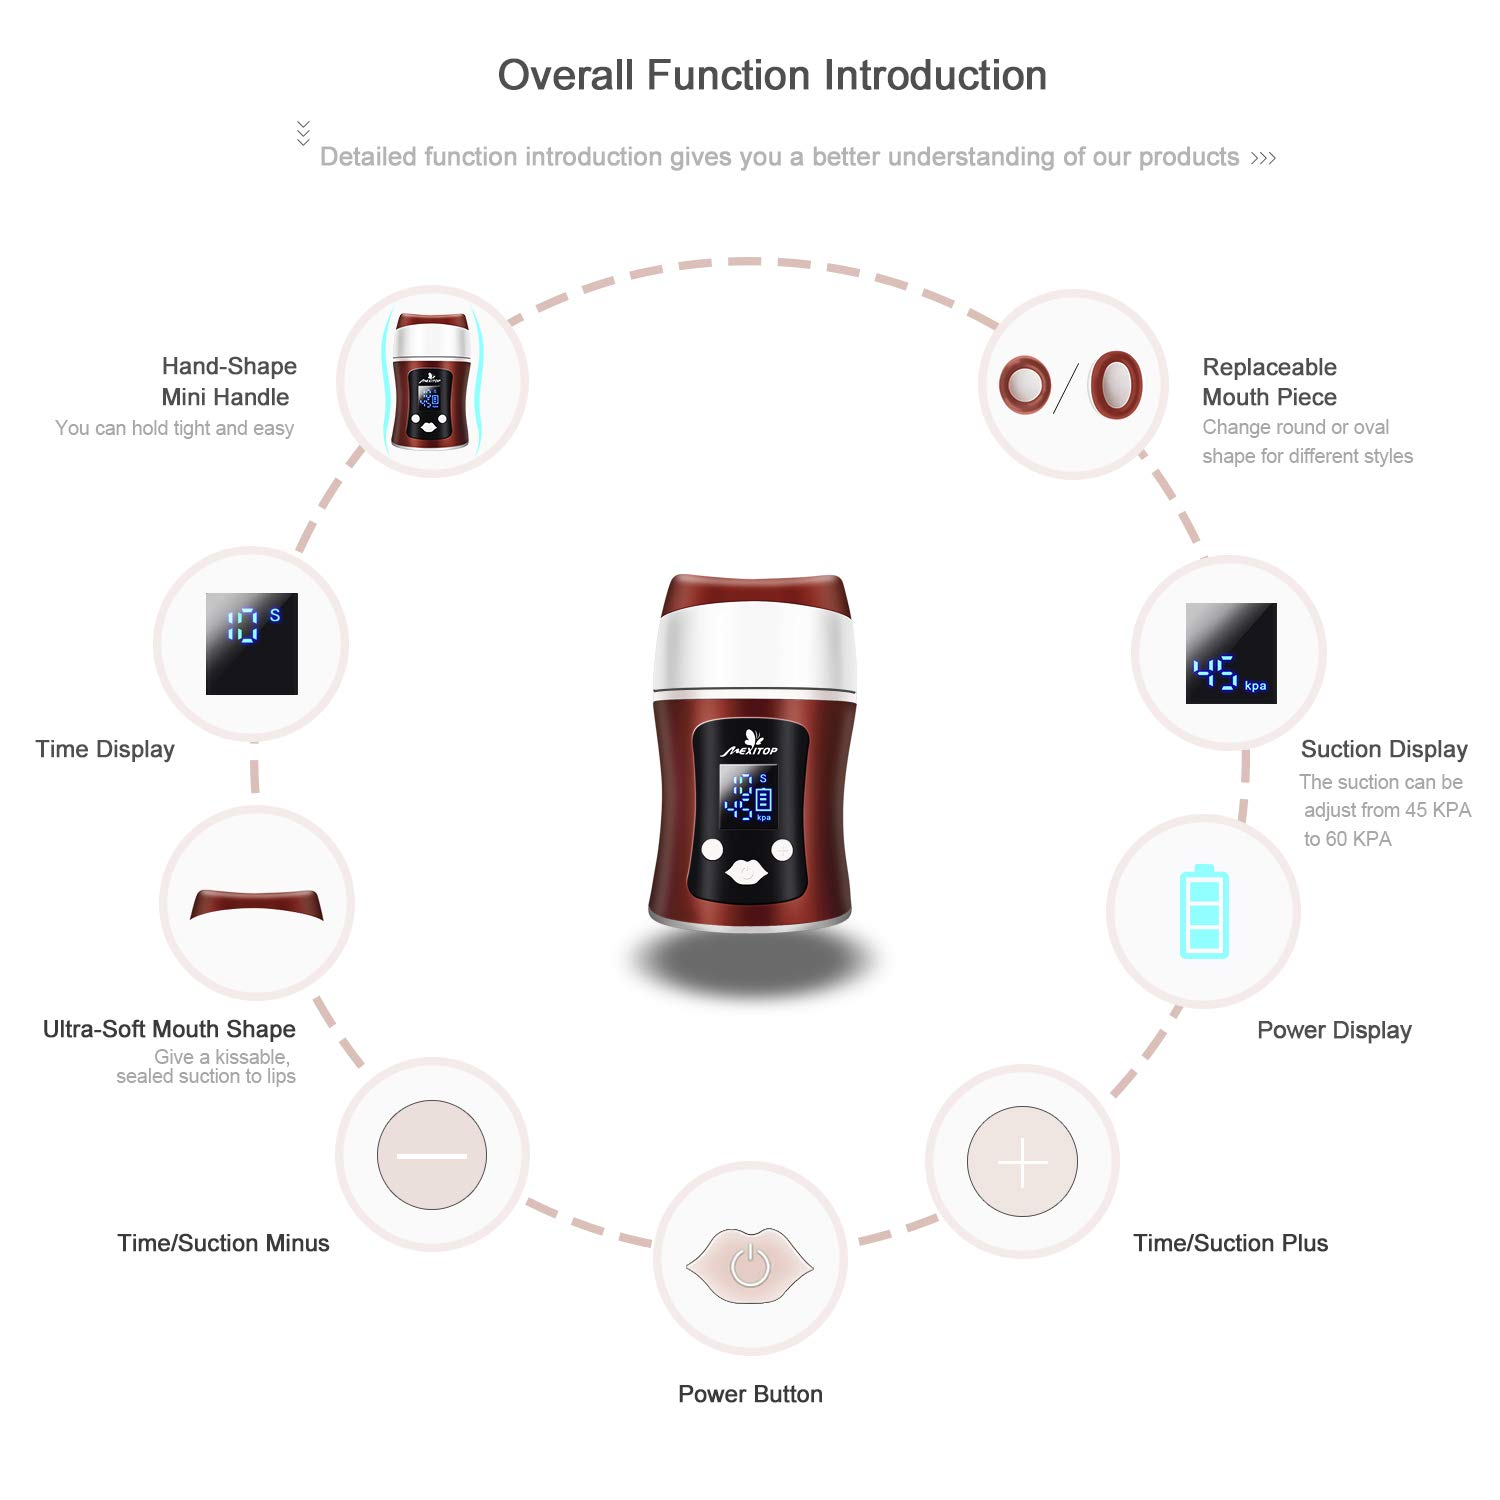 Lip Plumper - Mexitop Upgraded Automatic Lip Plumper Device, Smart Control (Time, Suction), Digital Display, USB Charging for Lips Makeup (Brownish Red, Bonus Sponge Pad Included), 2019 New by MEXITOP (Image #3)